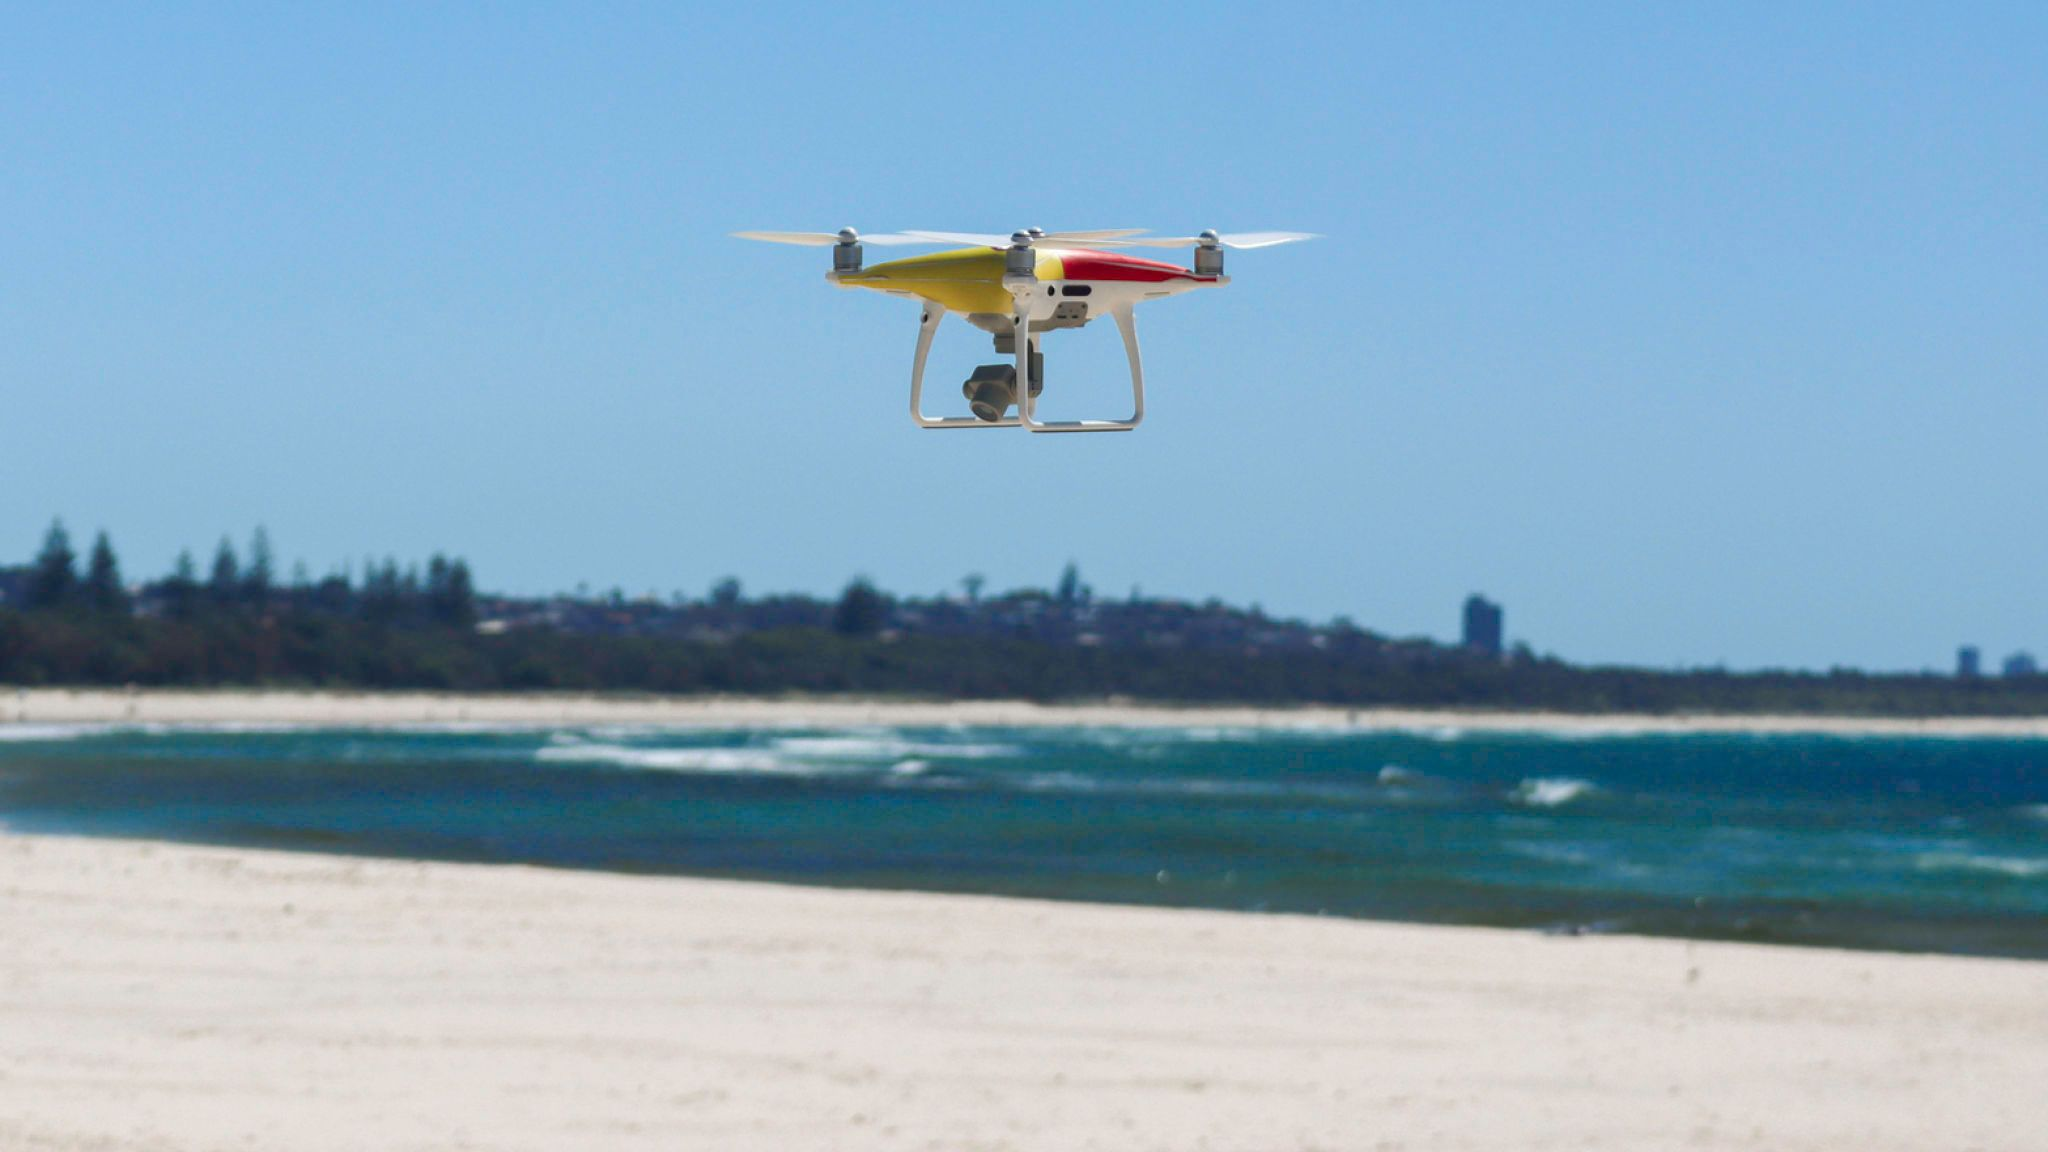 UK Coastguard To Trial The Use Of Drones In Rescue Missions